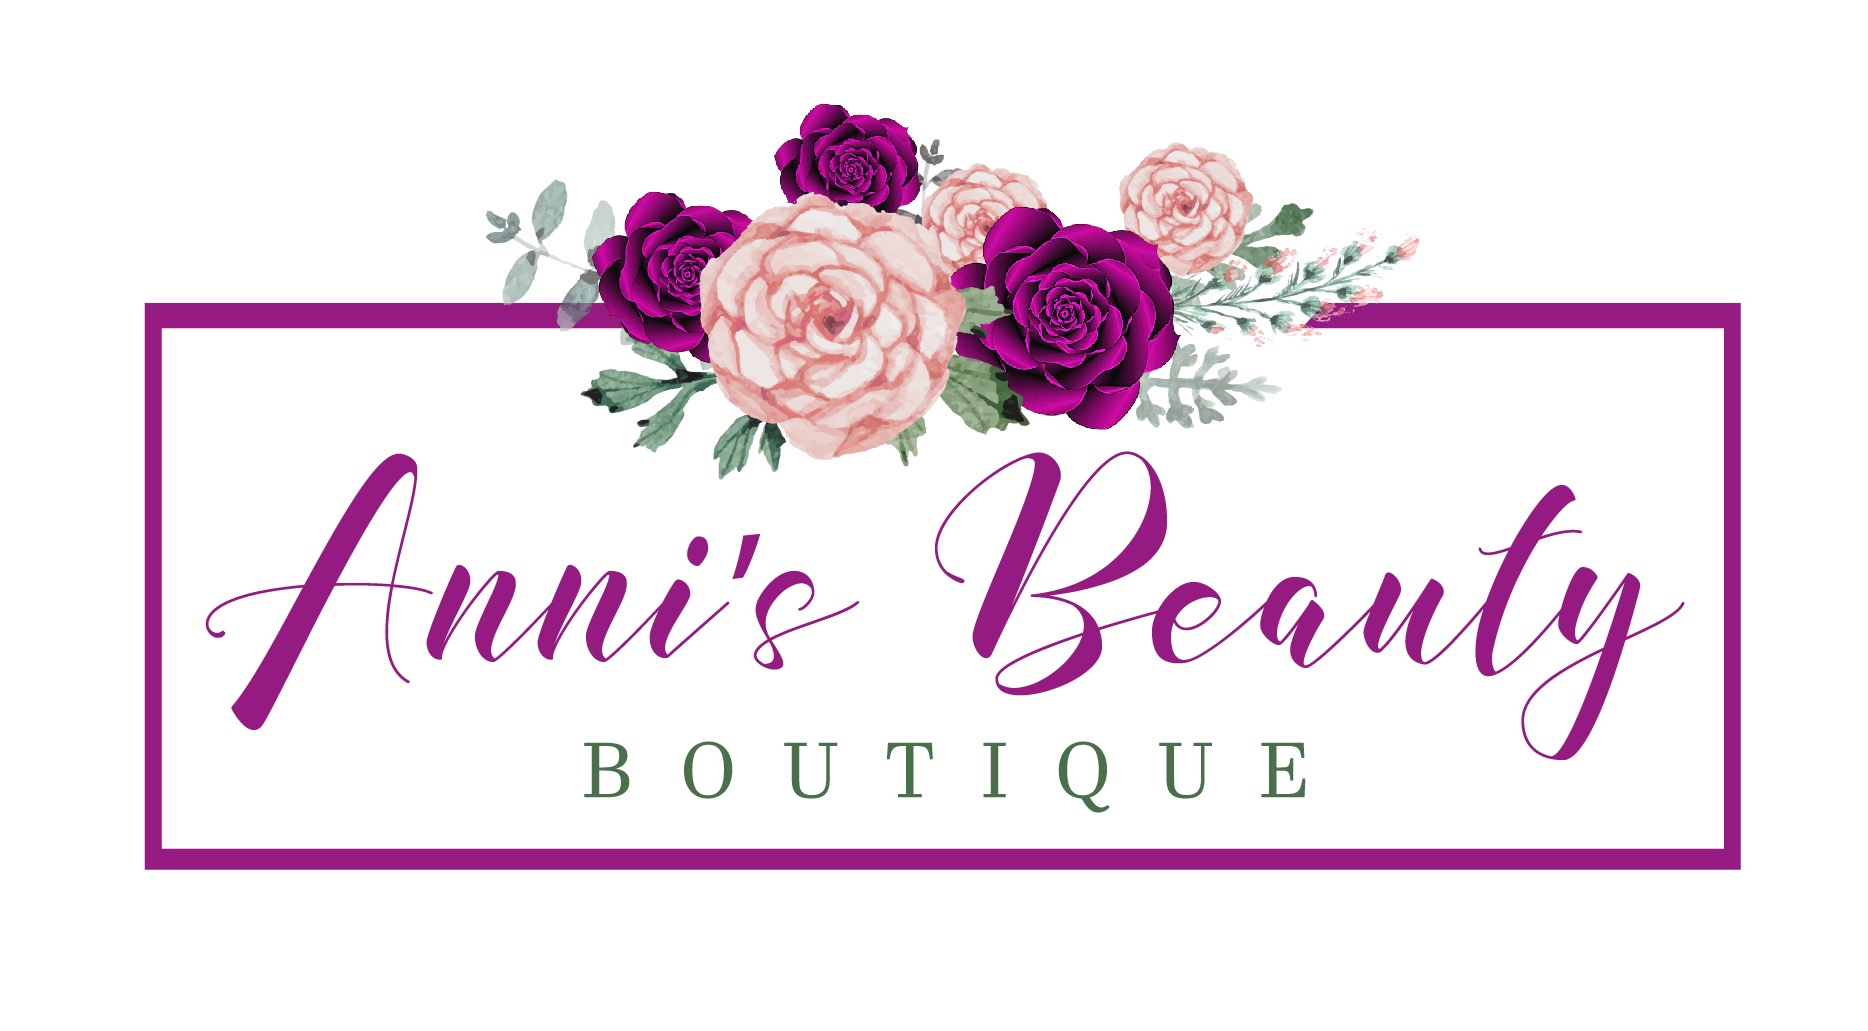 ANNI'S BEAUTY BOUTIQUE